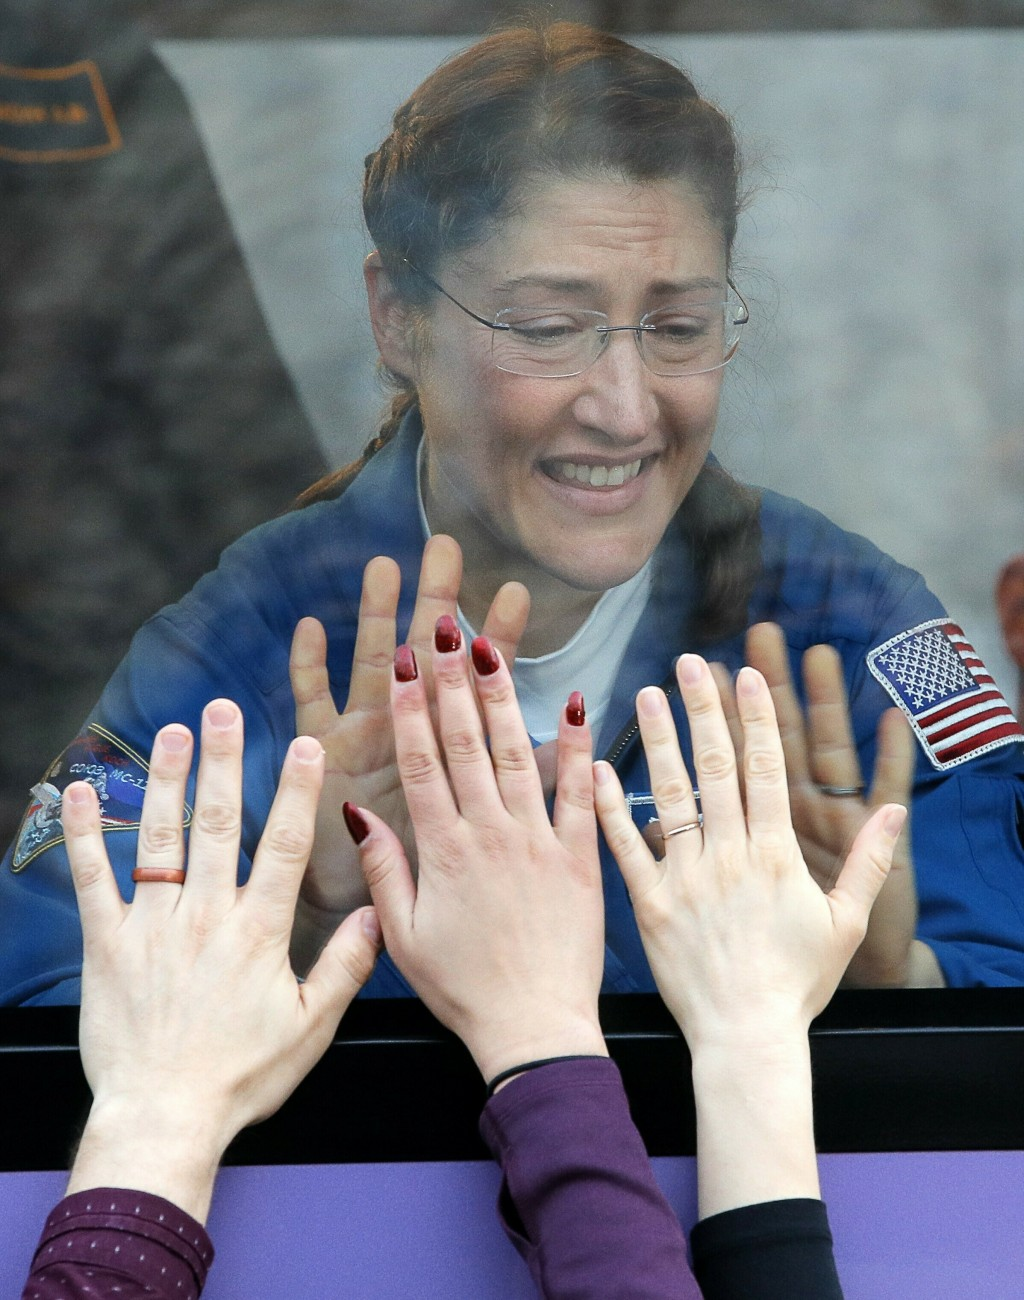 U.S. astronauts Christina Hammock Koch, a member of the main crew to the International Space Station (ISS), interacts with his relatives from a bus pr